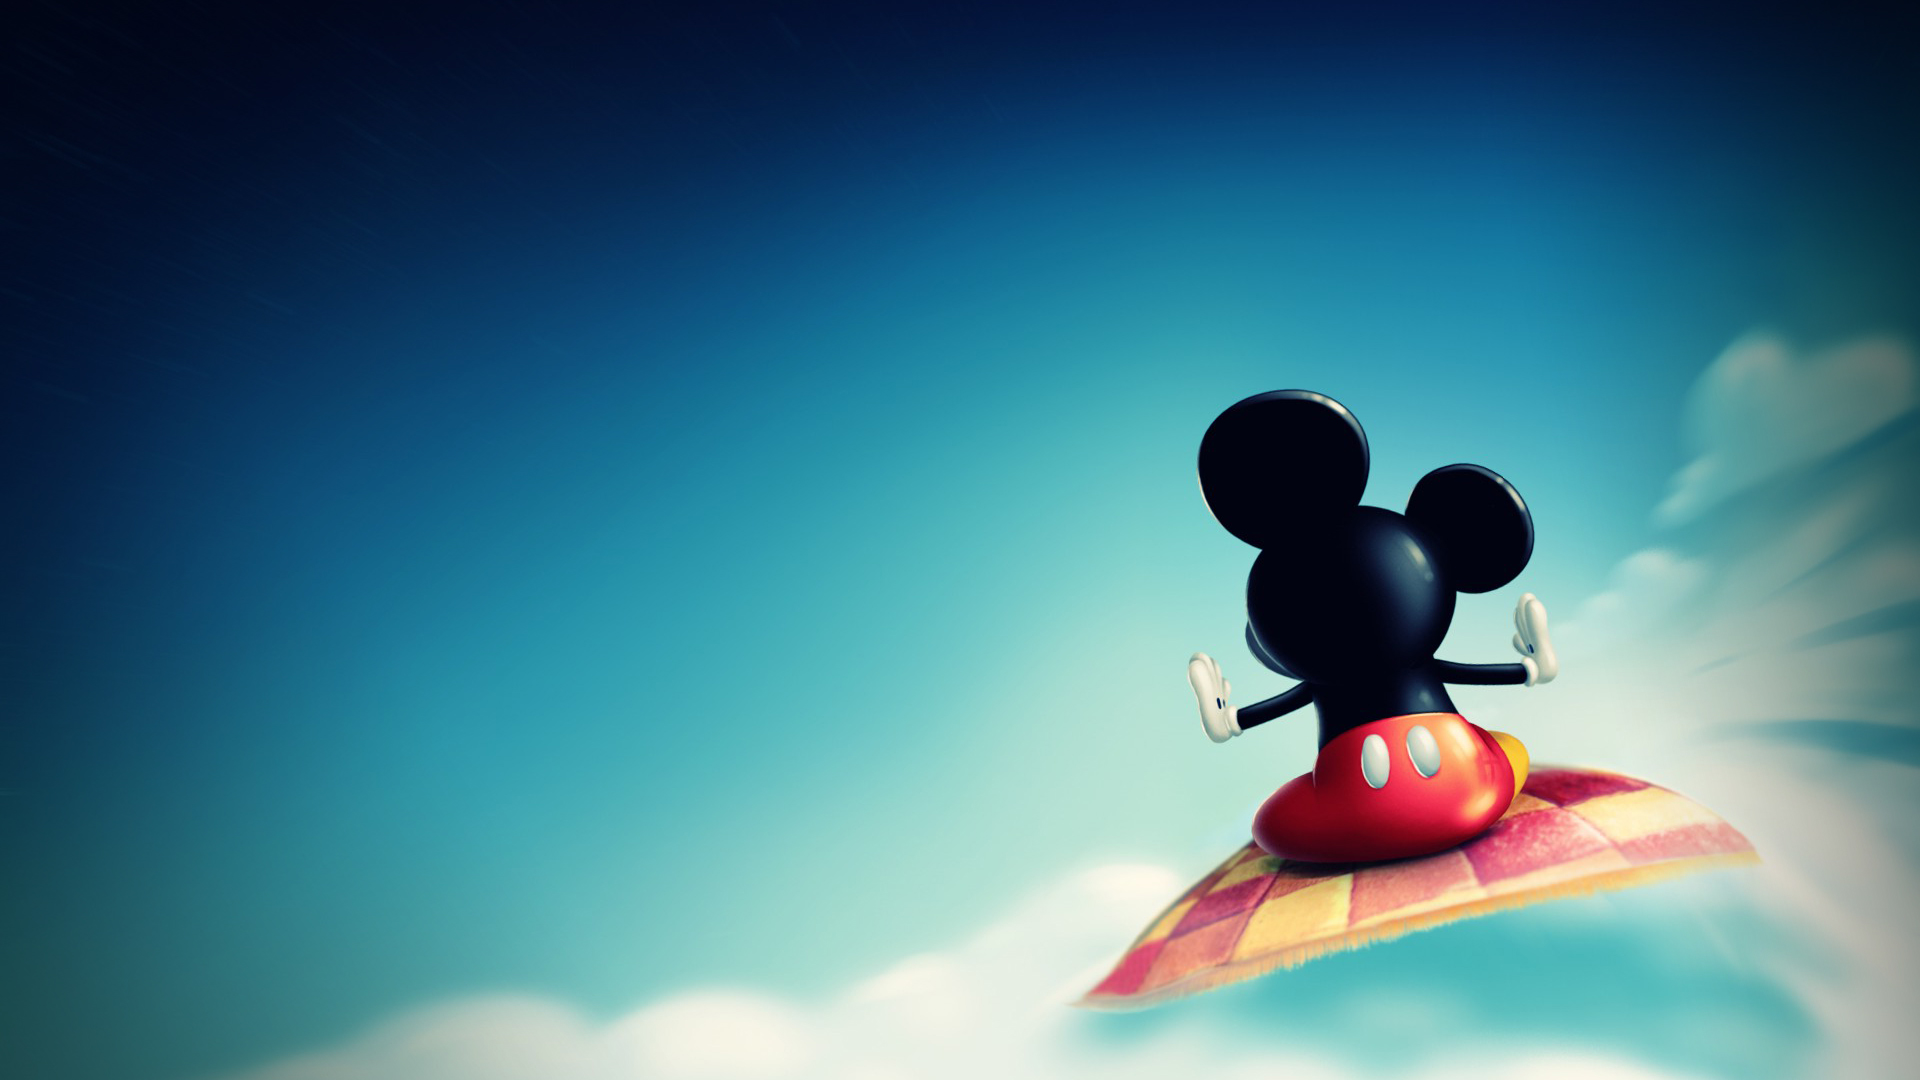 disney wallpaper hd - wallpapersafari